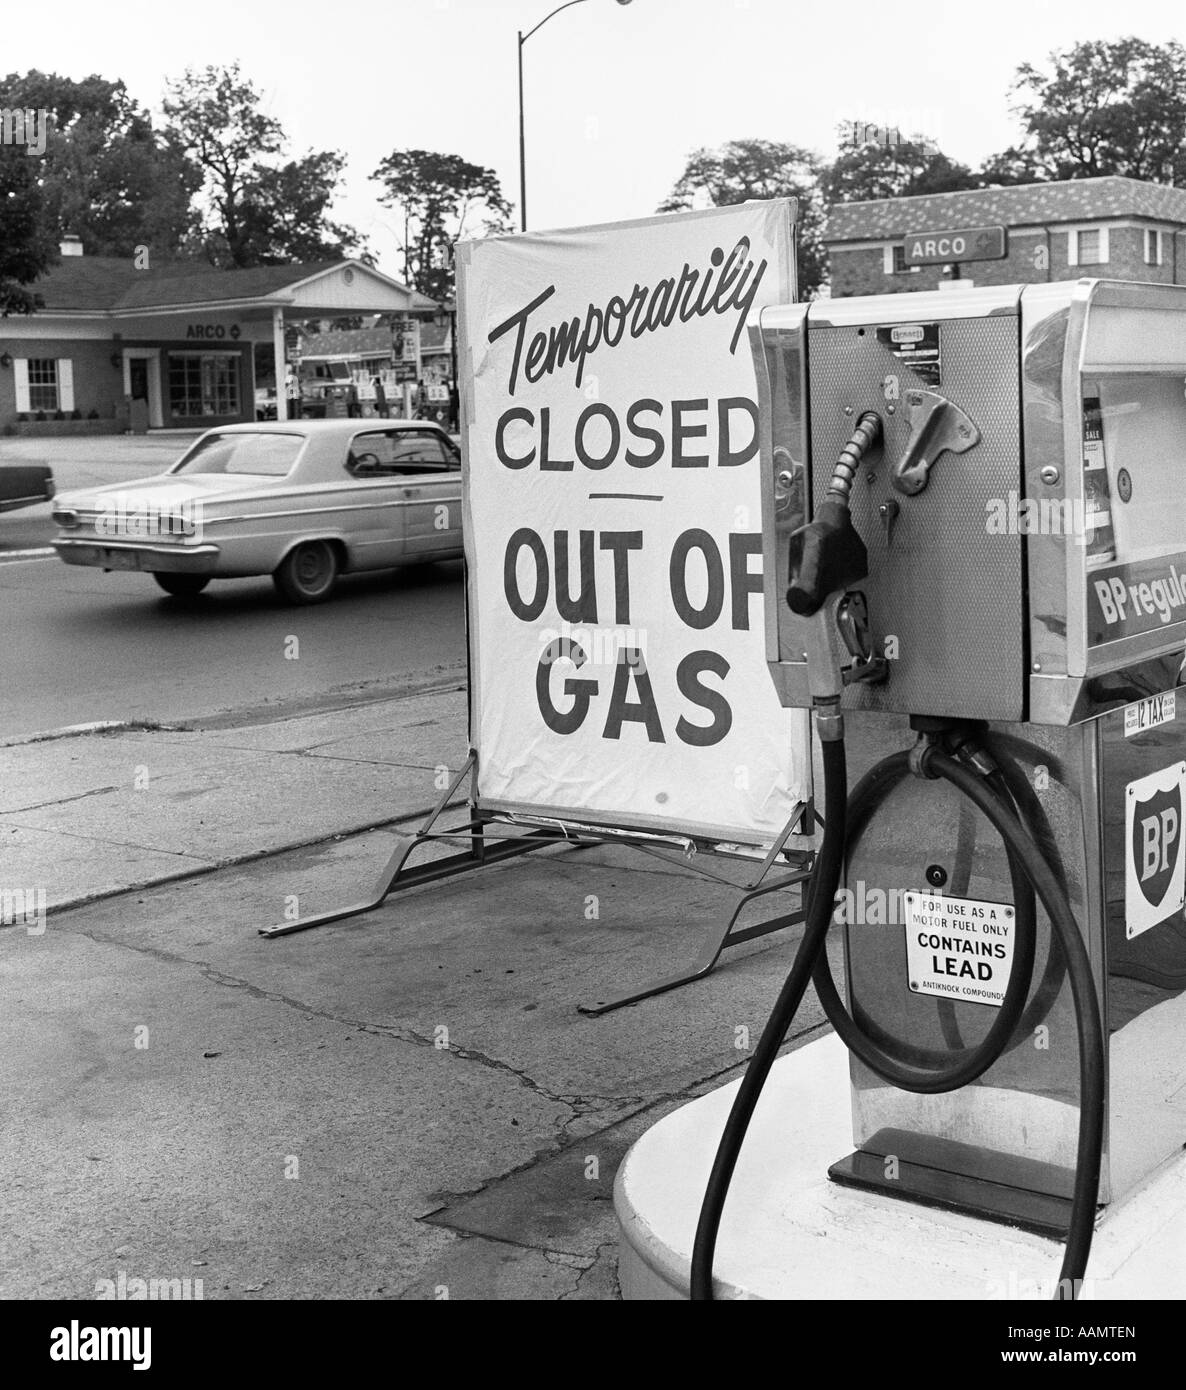 1970s TEMPORARILY CLOSED OUT OF GAS SIGN BY GAS STATION PUMP DURING GASOLINE SHORTAGE CRISIS OPEC OIL - Stock Image